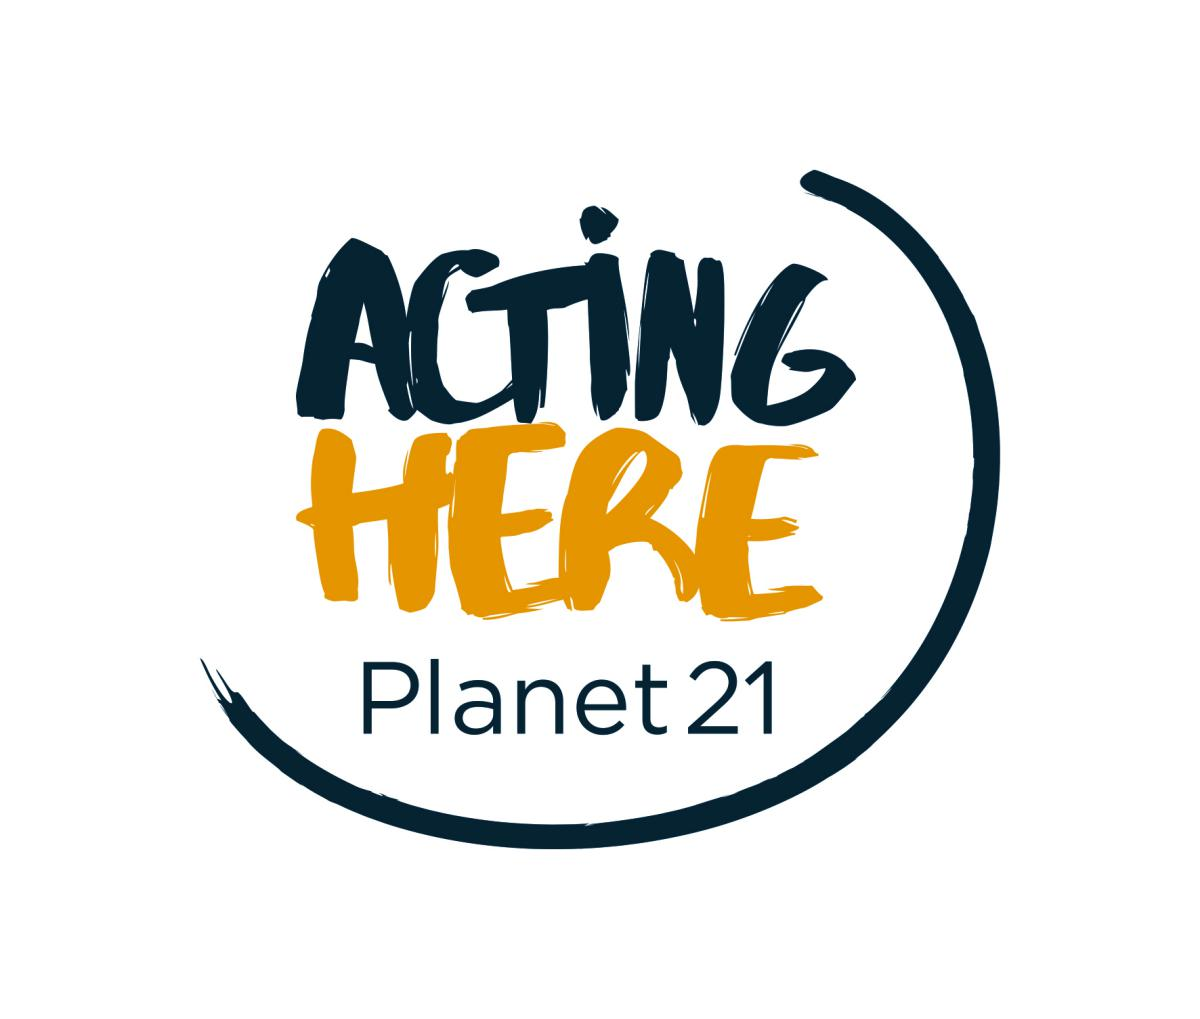 Acting Here Planet 21 : Programme de développement Durable du Groupe Accorhotels